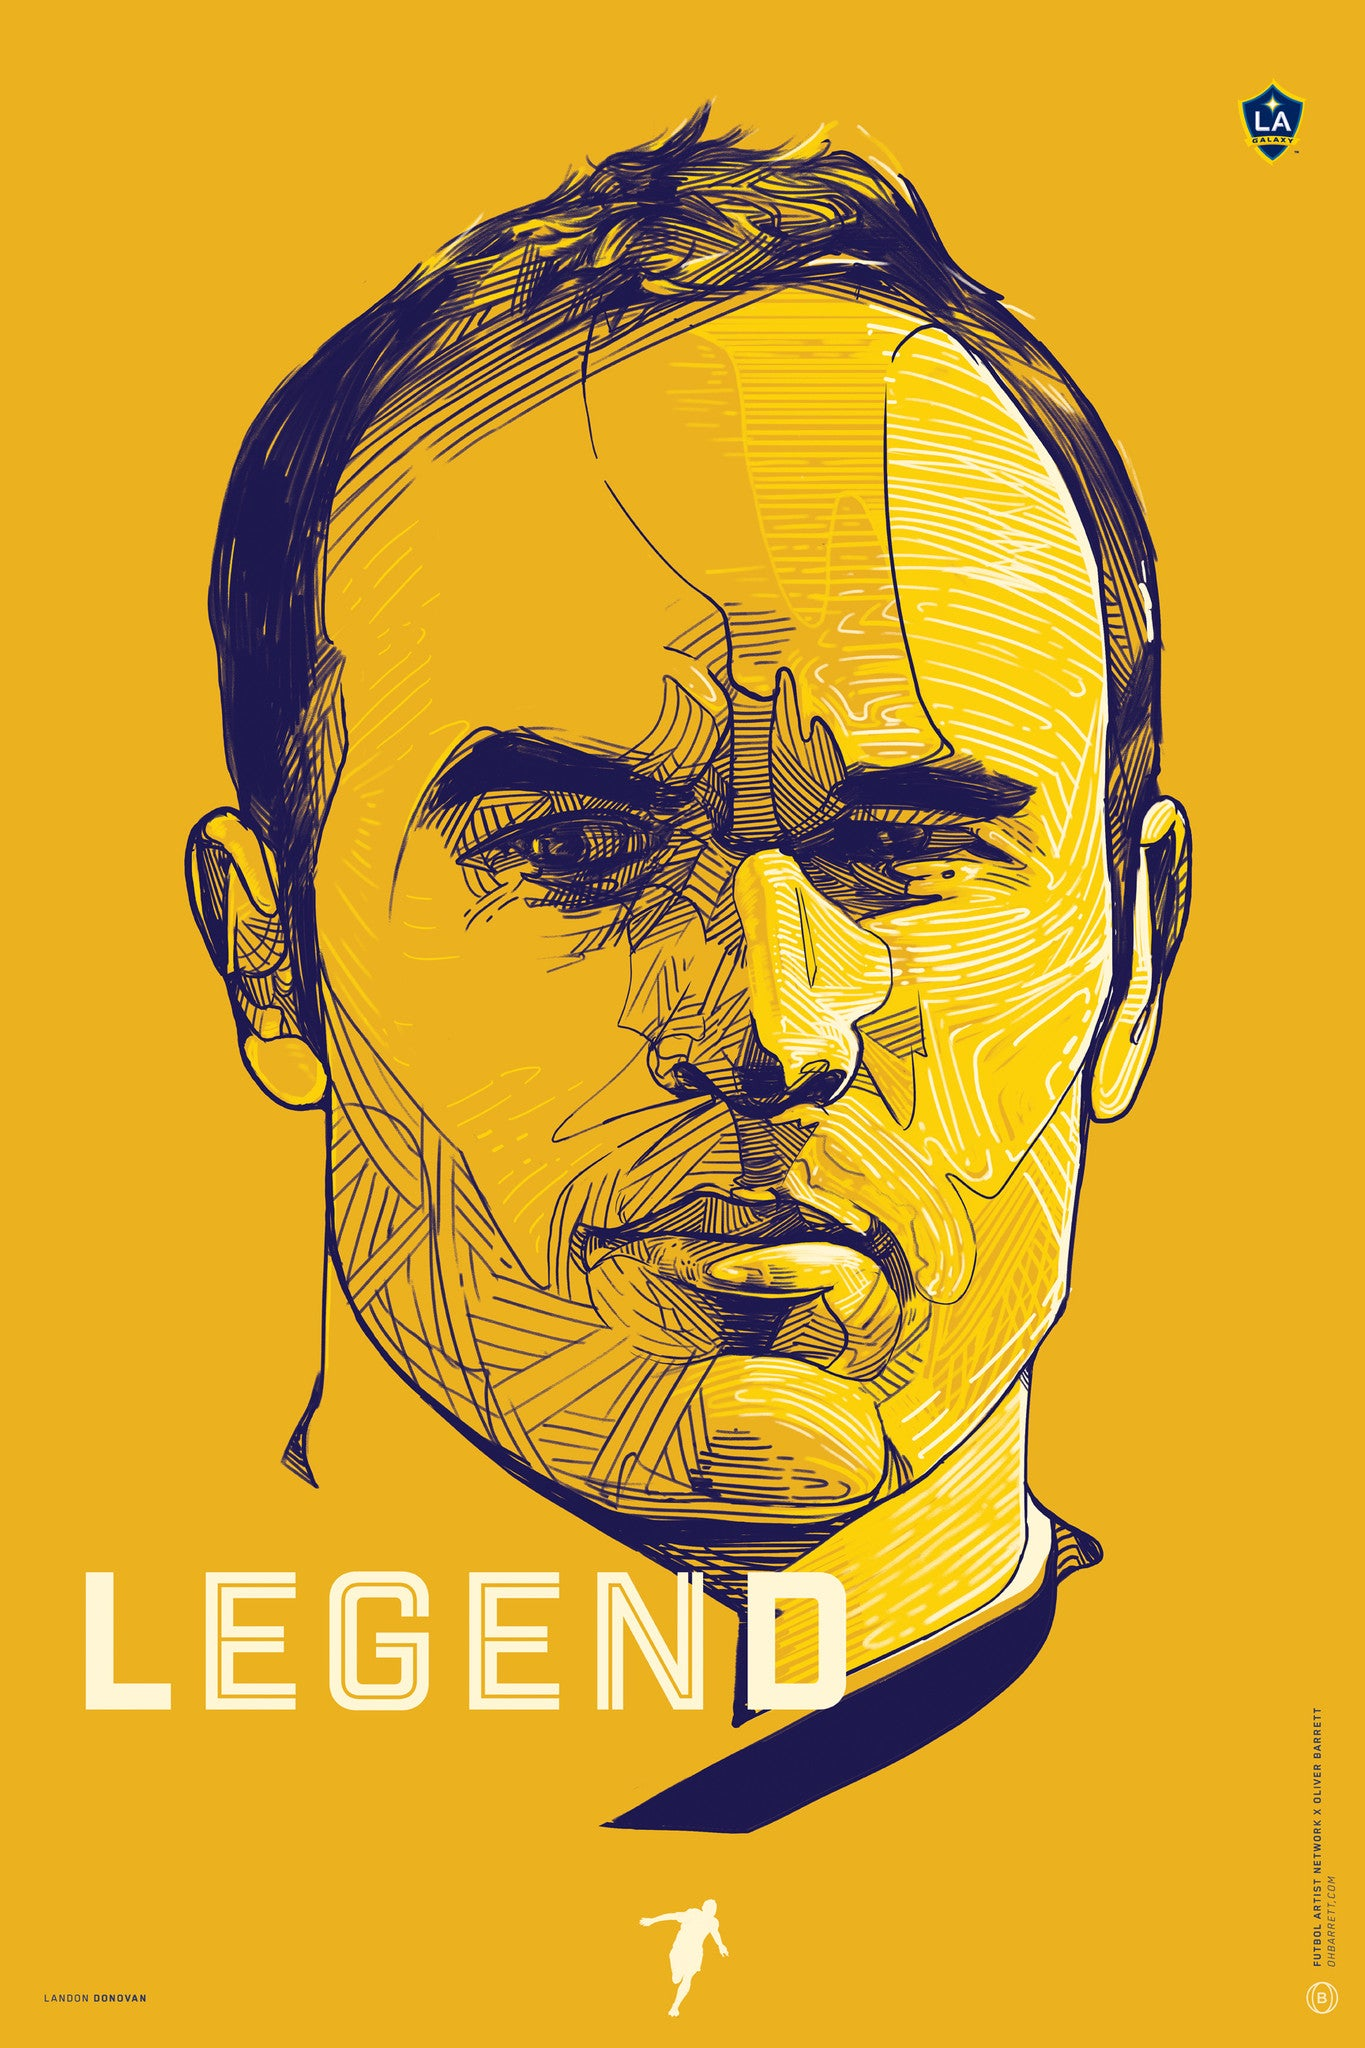 Landon Donovan - LEGEND Galaxy Version